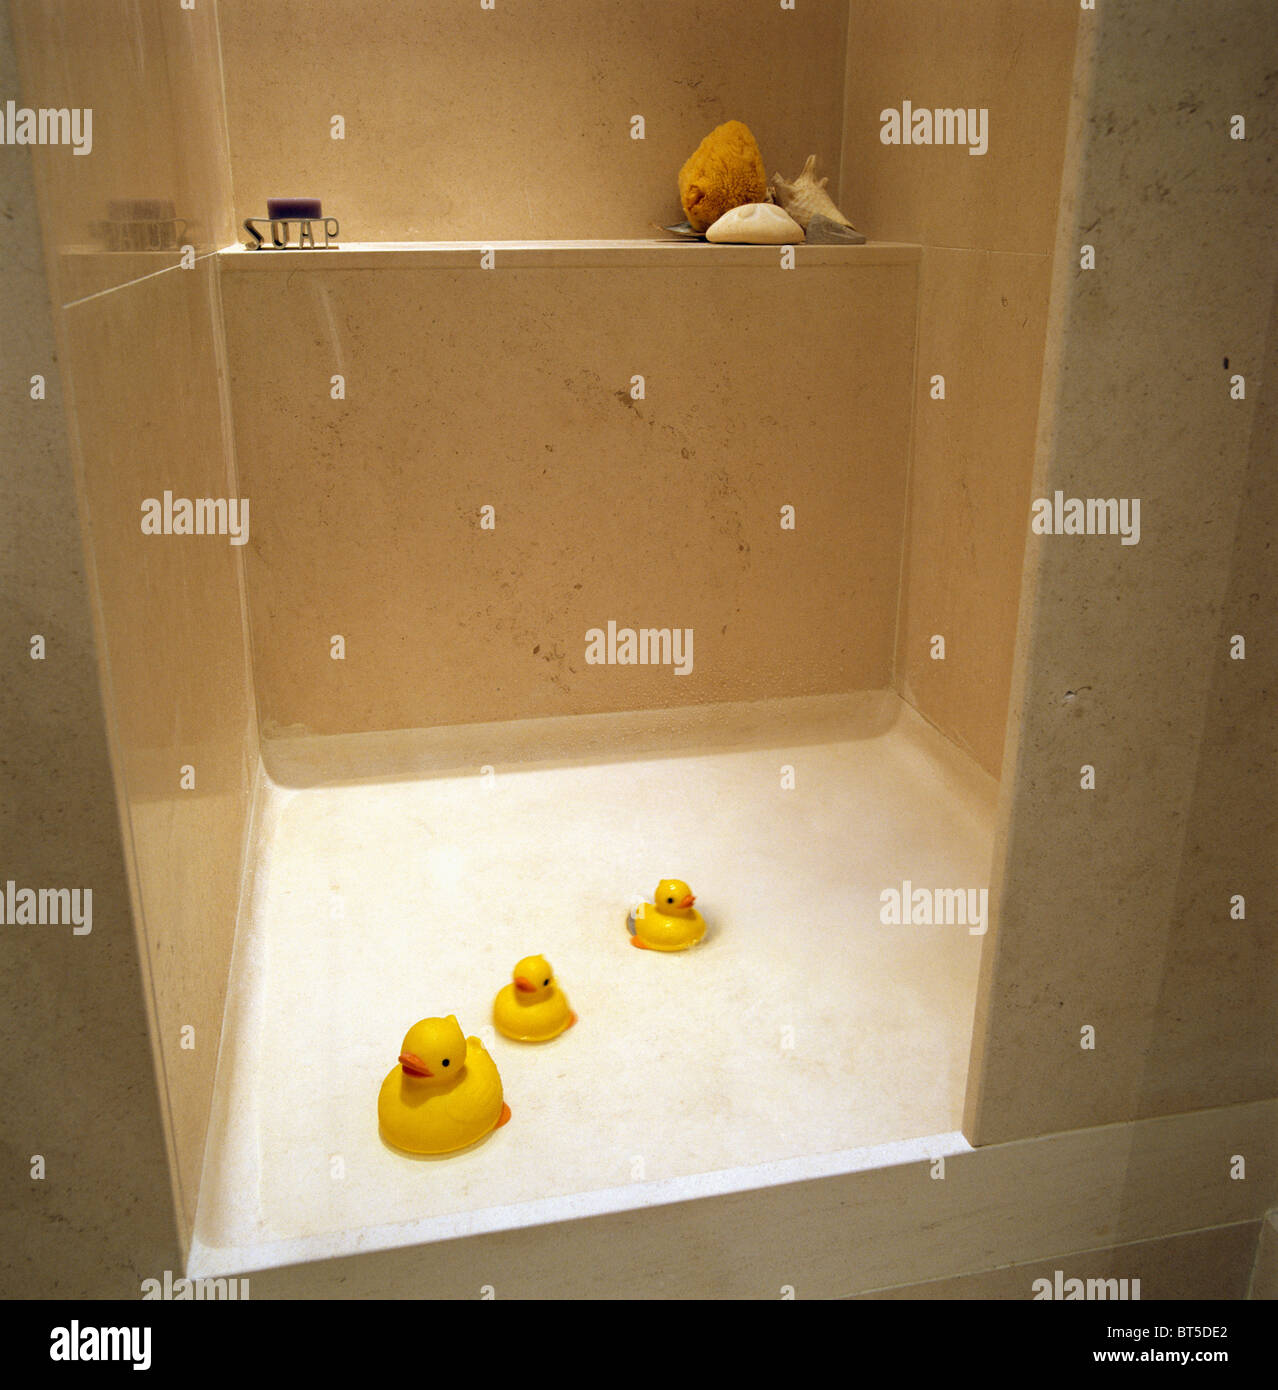 Close-up of yellow plastic ducks on floor of shower in modern white ...